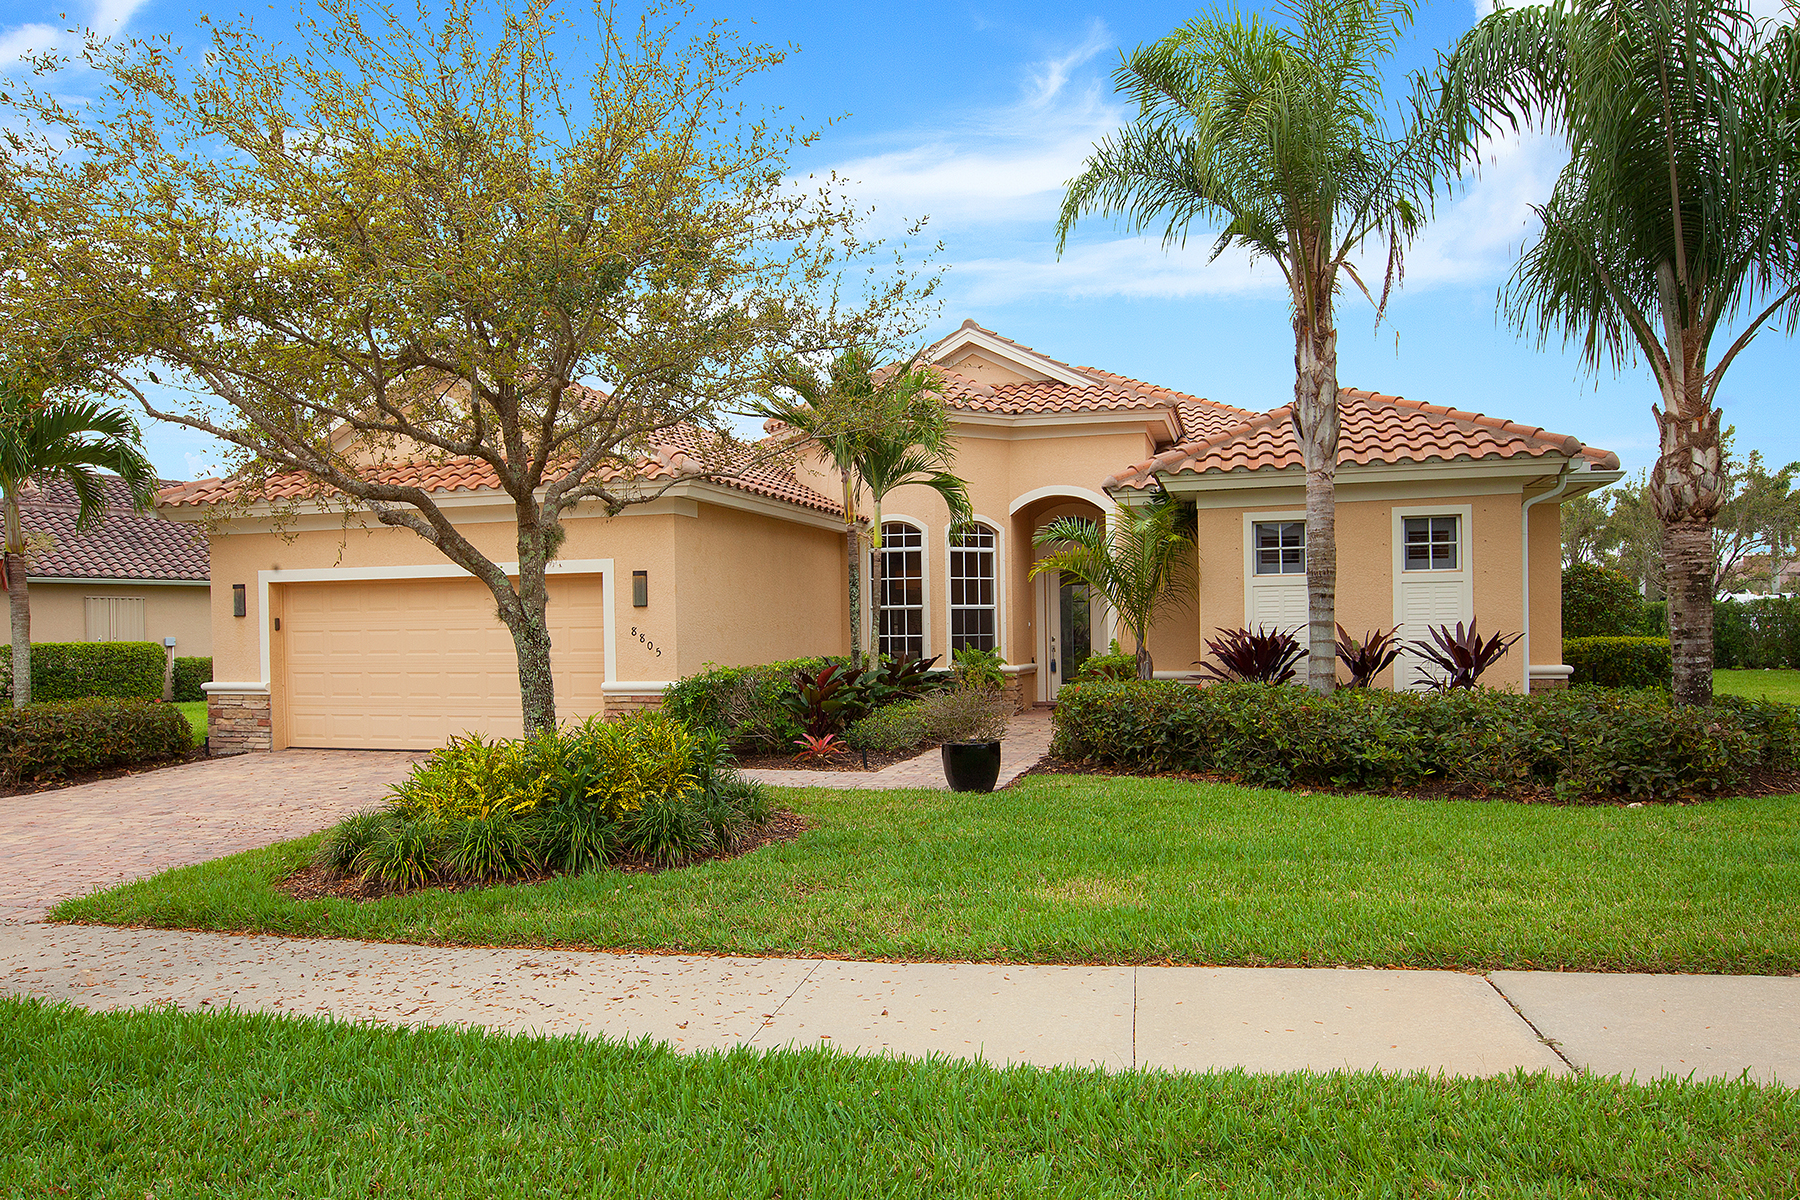 Single Family Home for Sale at QUARRY - SPINNER COVE LANE 8805 Spinner Cove Ln, Naples, Florida 34120 United States